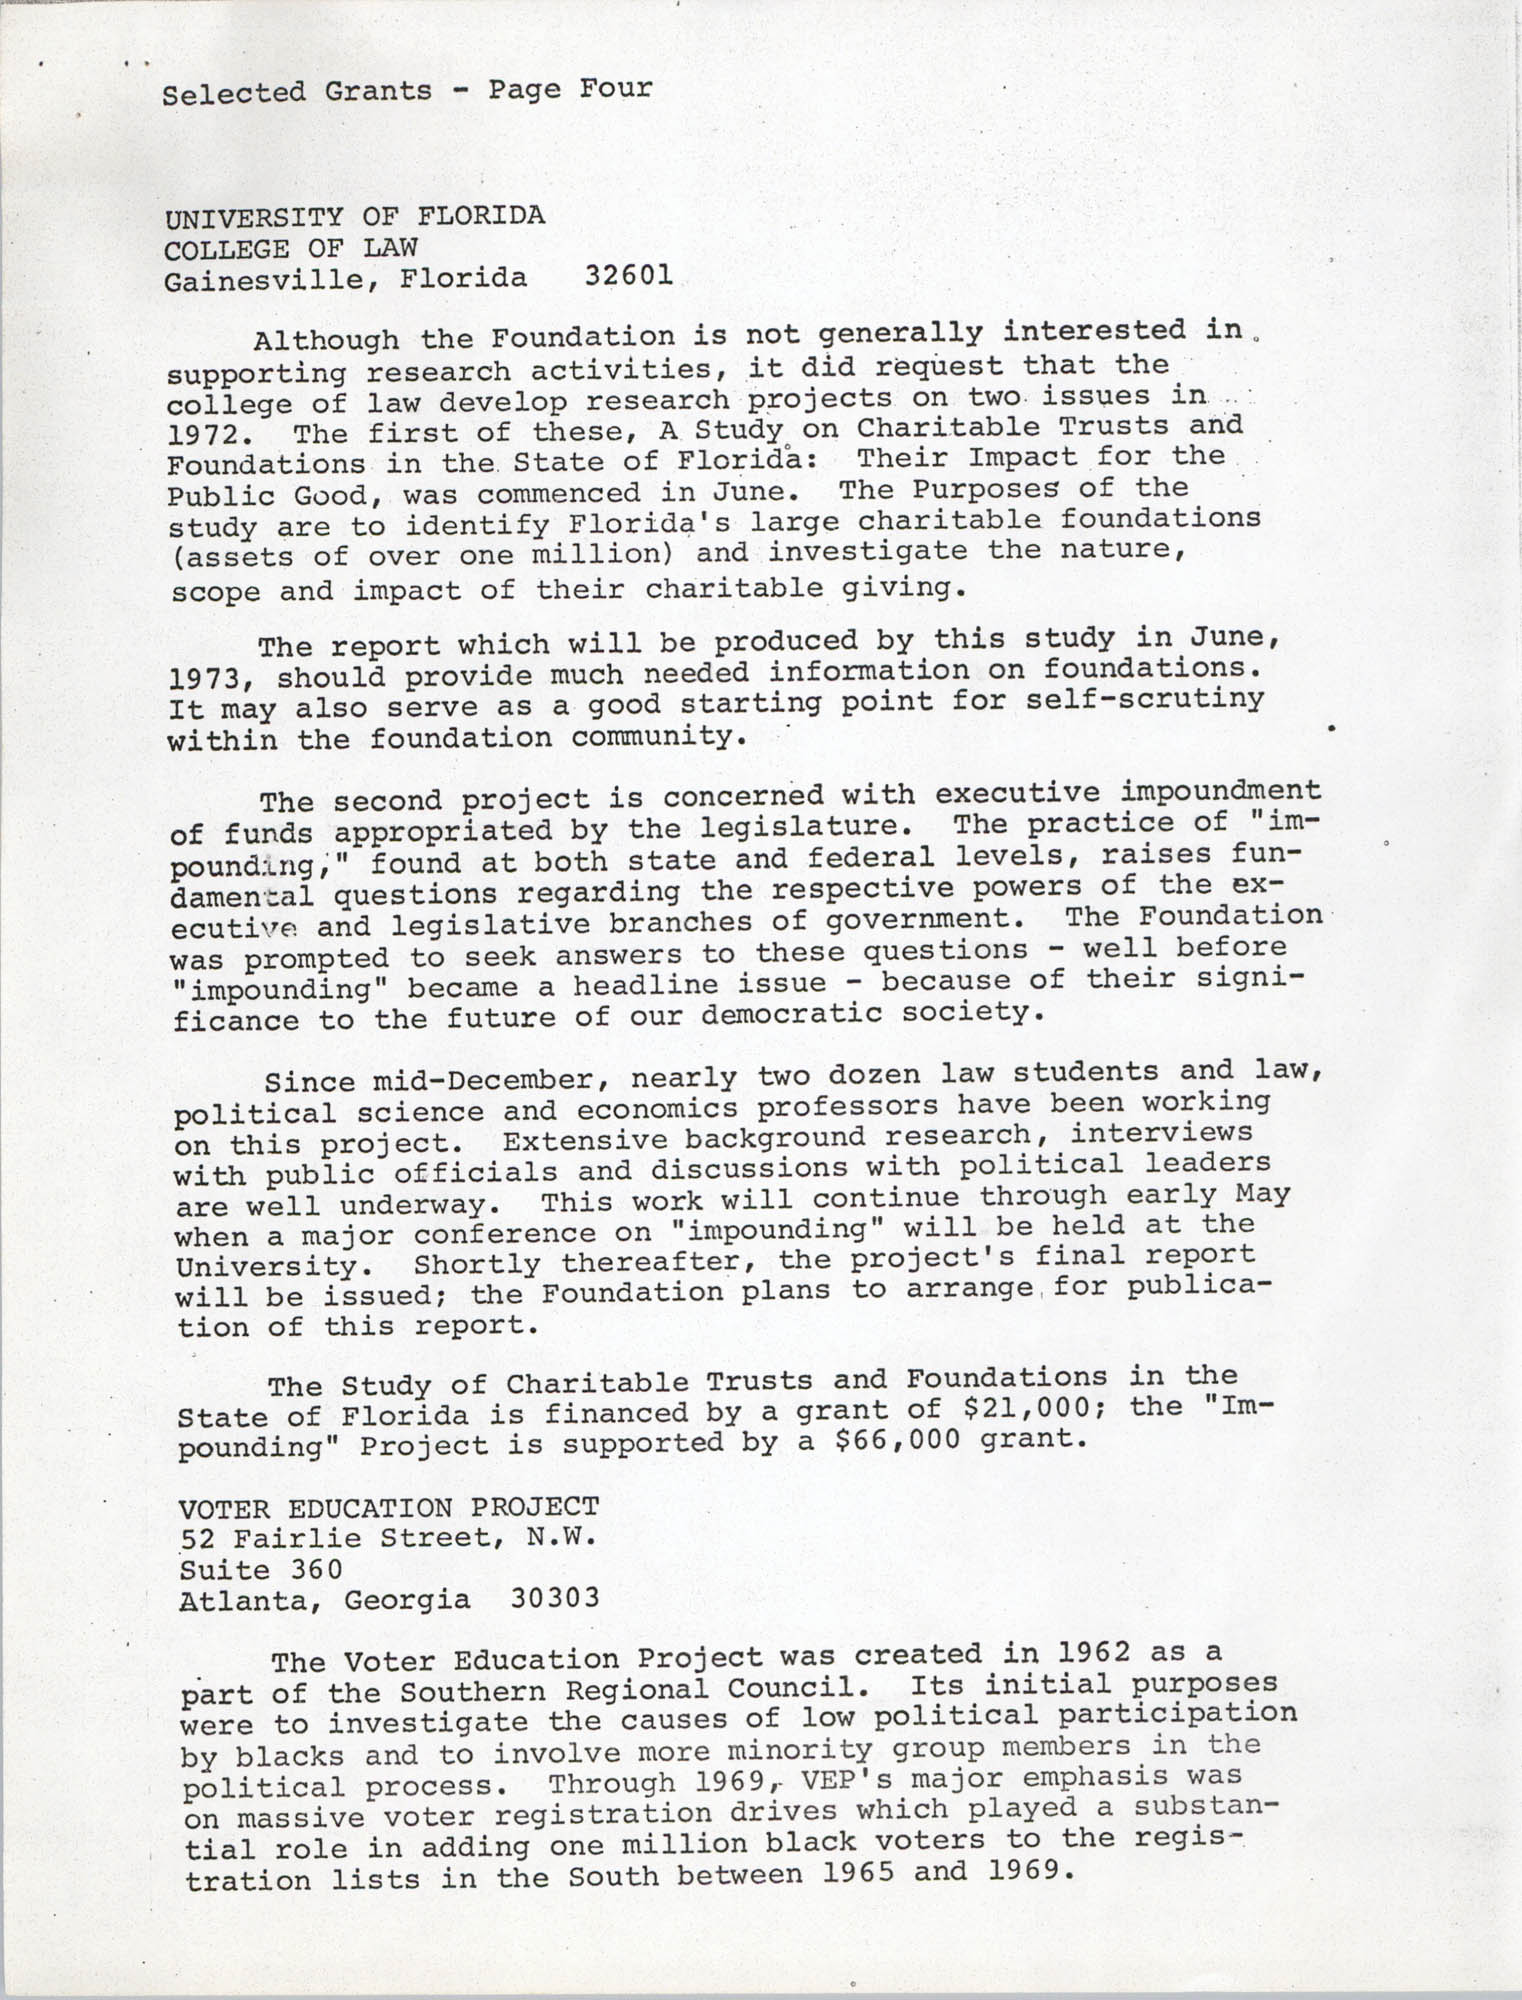 Josephine H. McIntosh Foundation Grant-Making Activities Report for 1972, Selected Grants Page 4